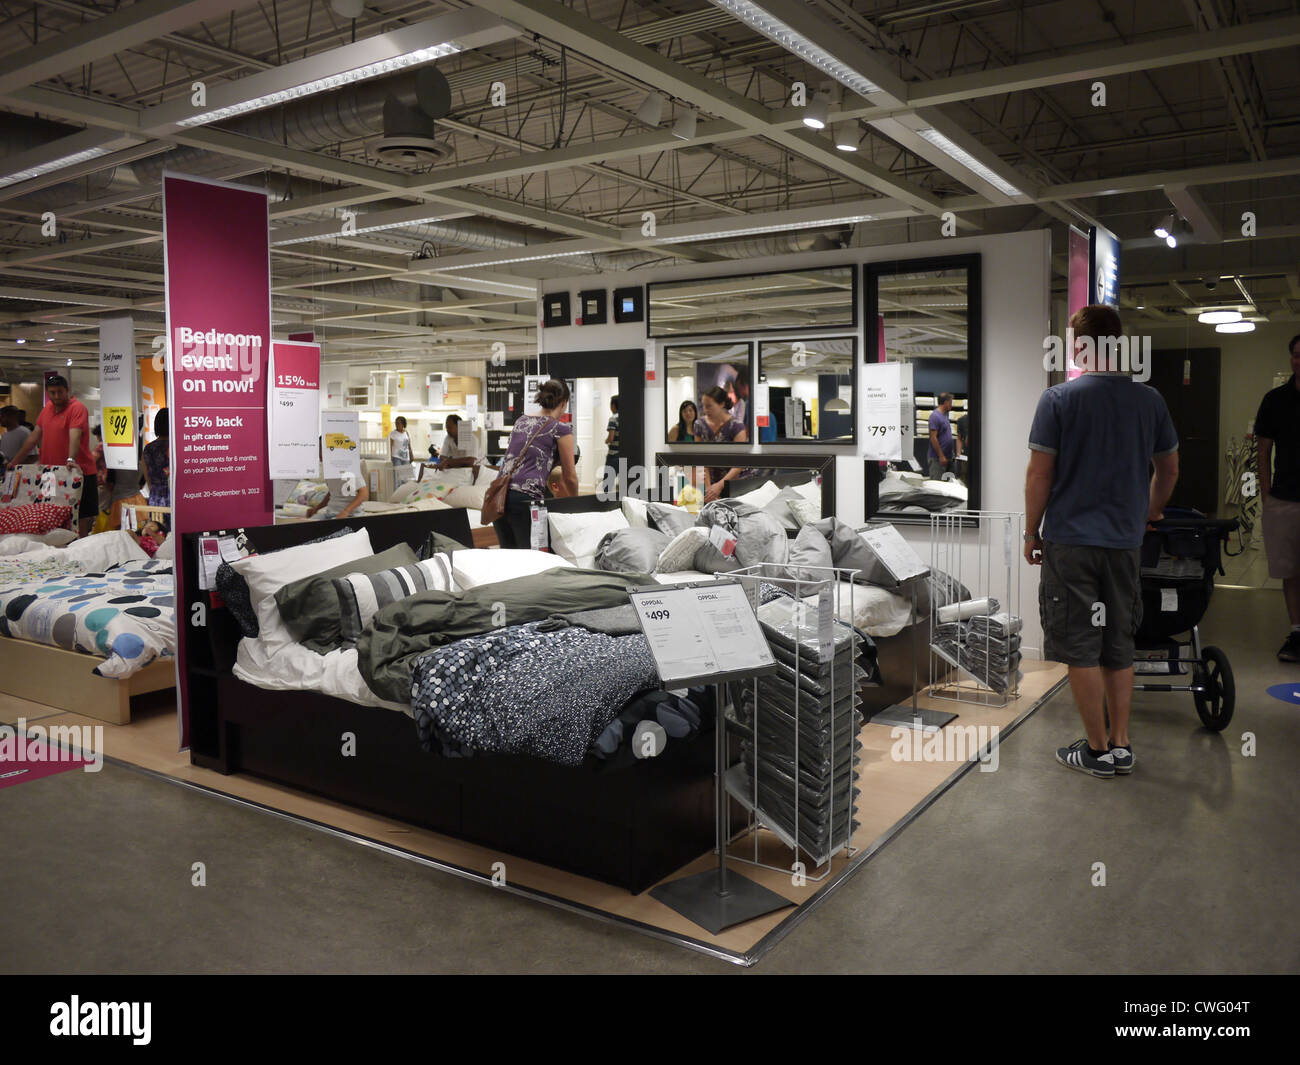 Bedroom furniture shopping customers showroom ikea stock for Couch shopping